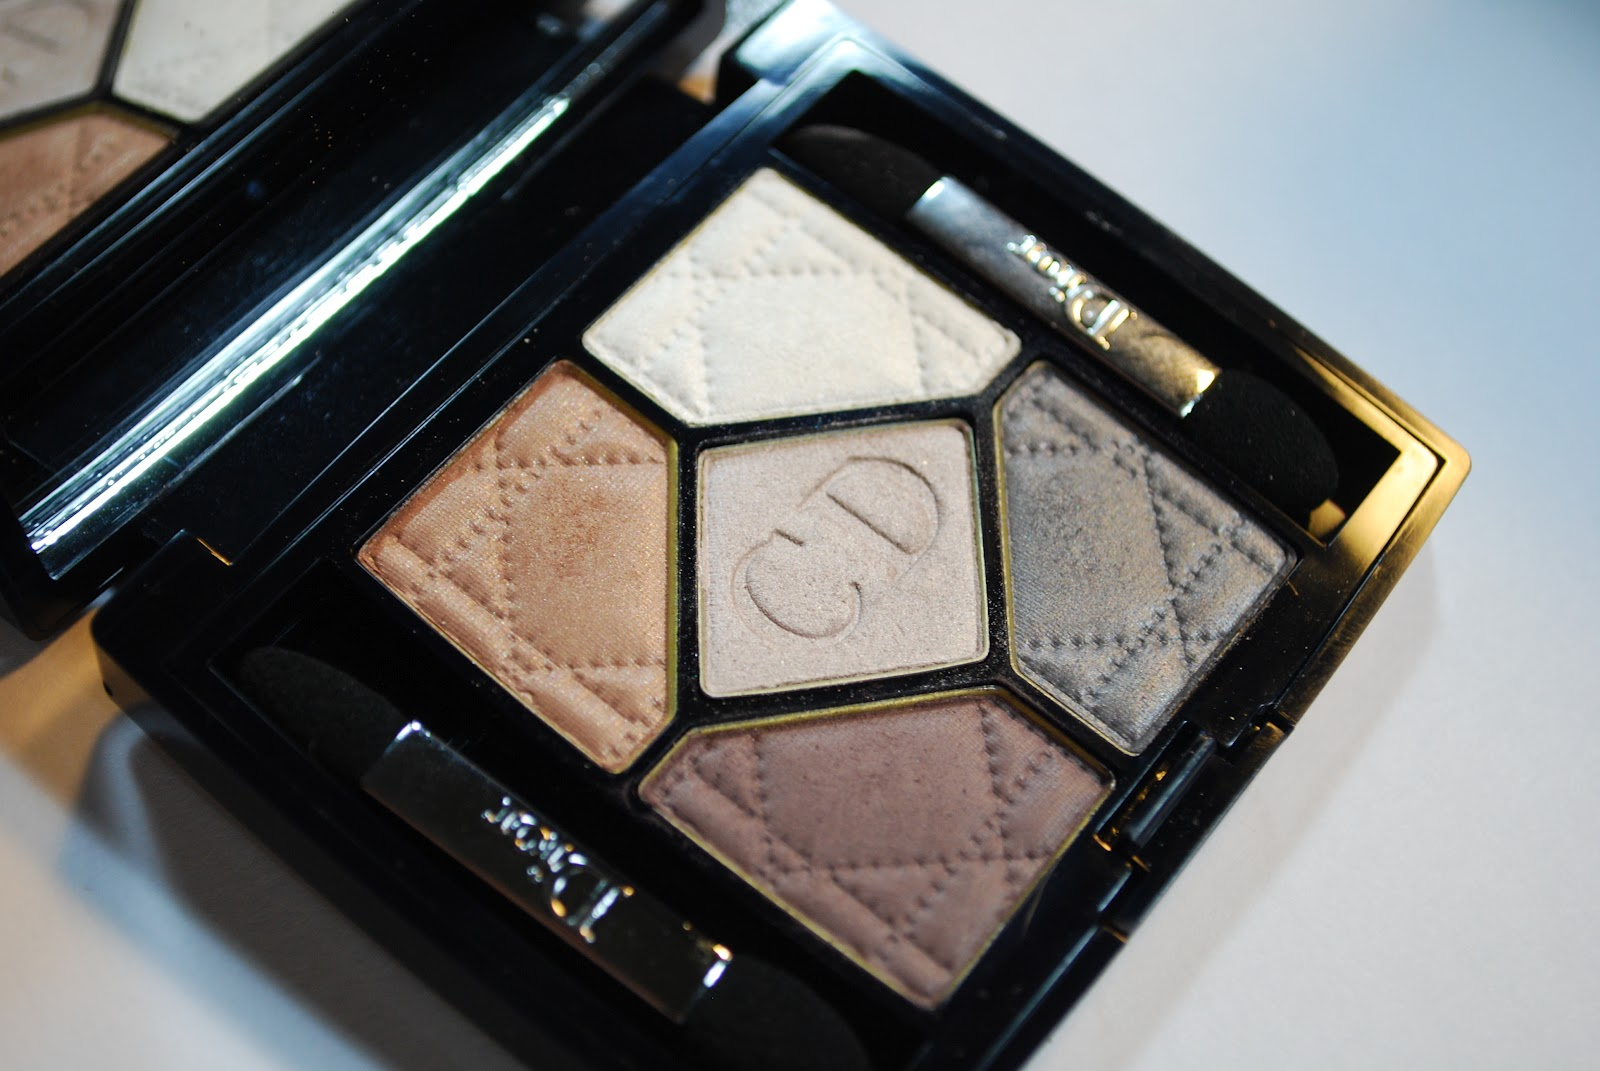 dior grege eyeshadow 5 pan review swatch